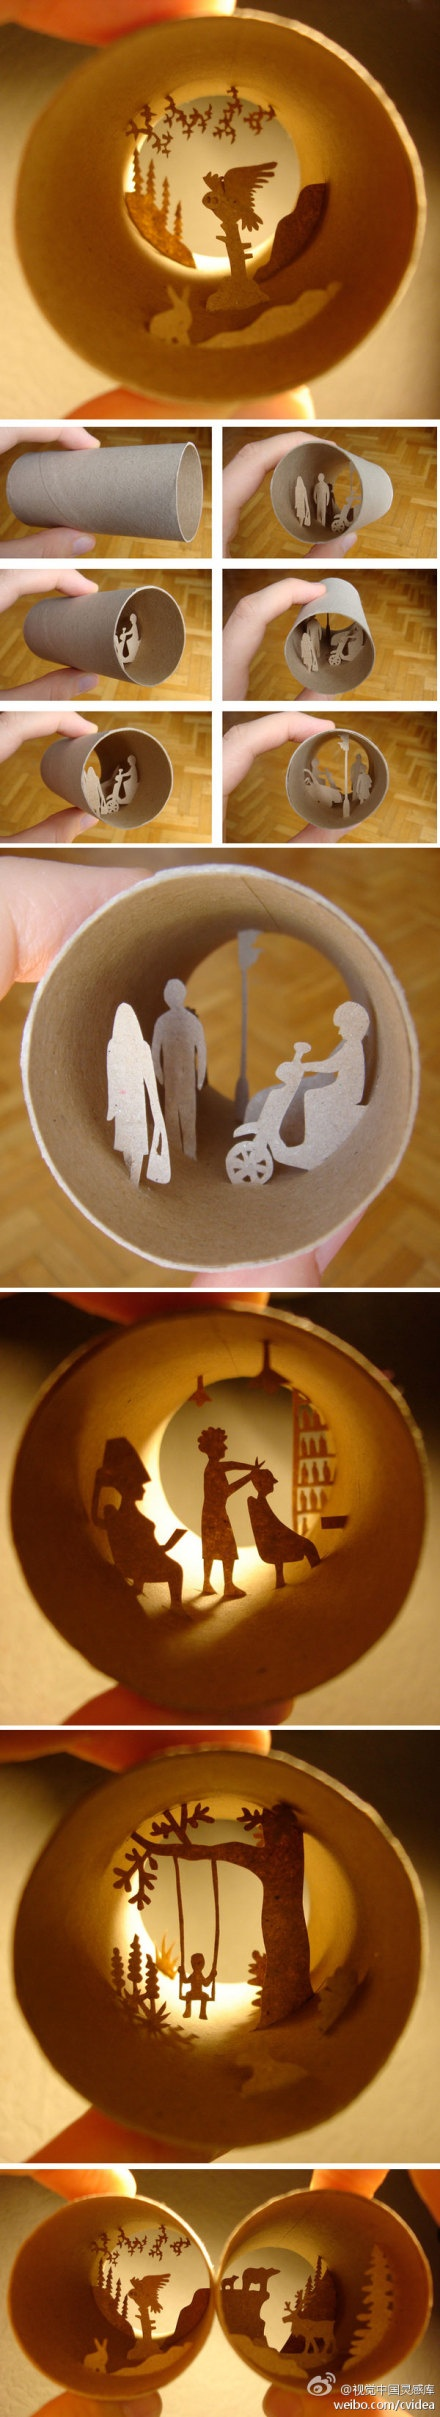 Amazing!: Crafts Ideas, Toilets Paper Rolls, Crafty Things, Kids Crafts, Amazing Things, Artsy Ideas, Crafty Projects, Paper Crafts, Rolls Silhouette